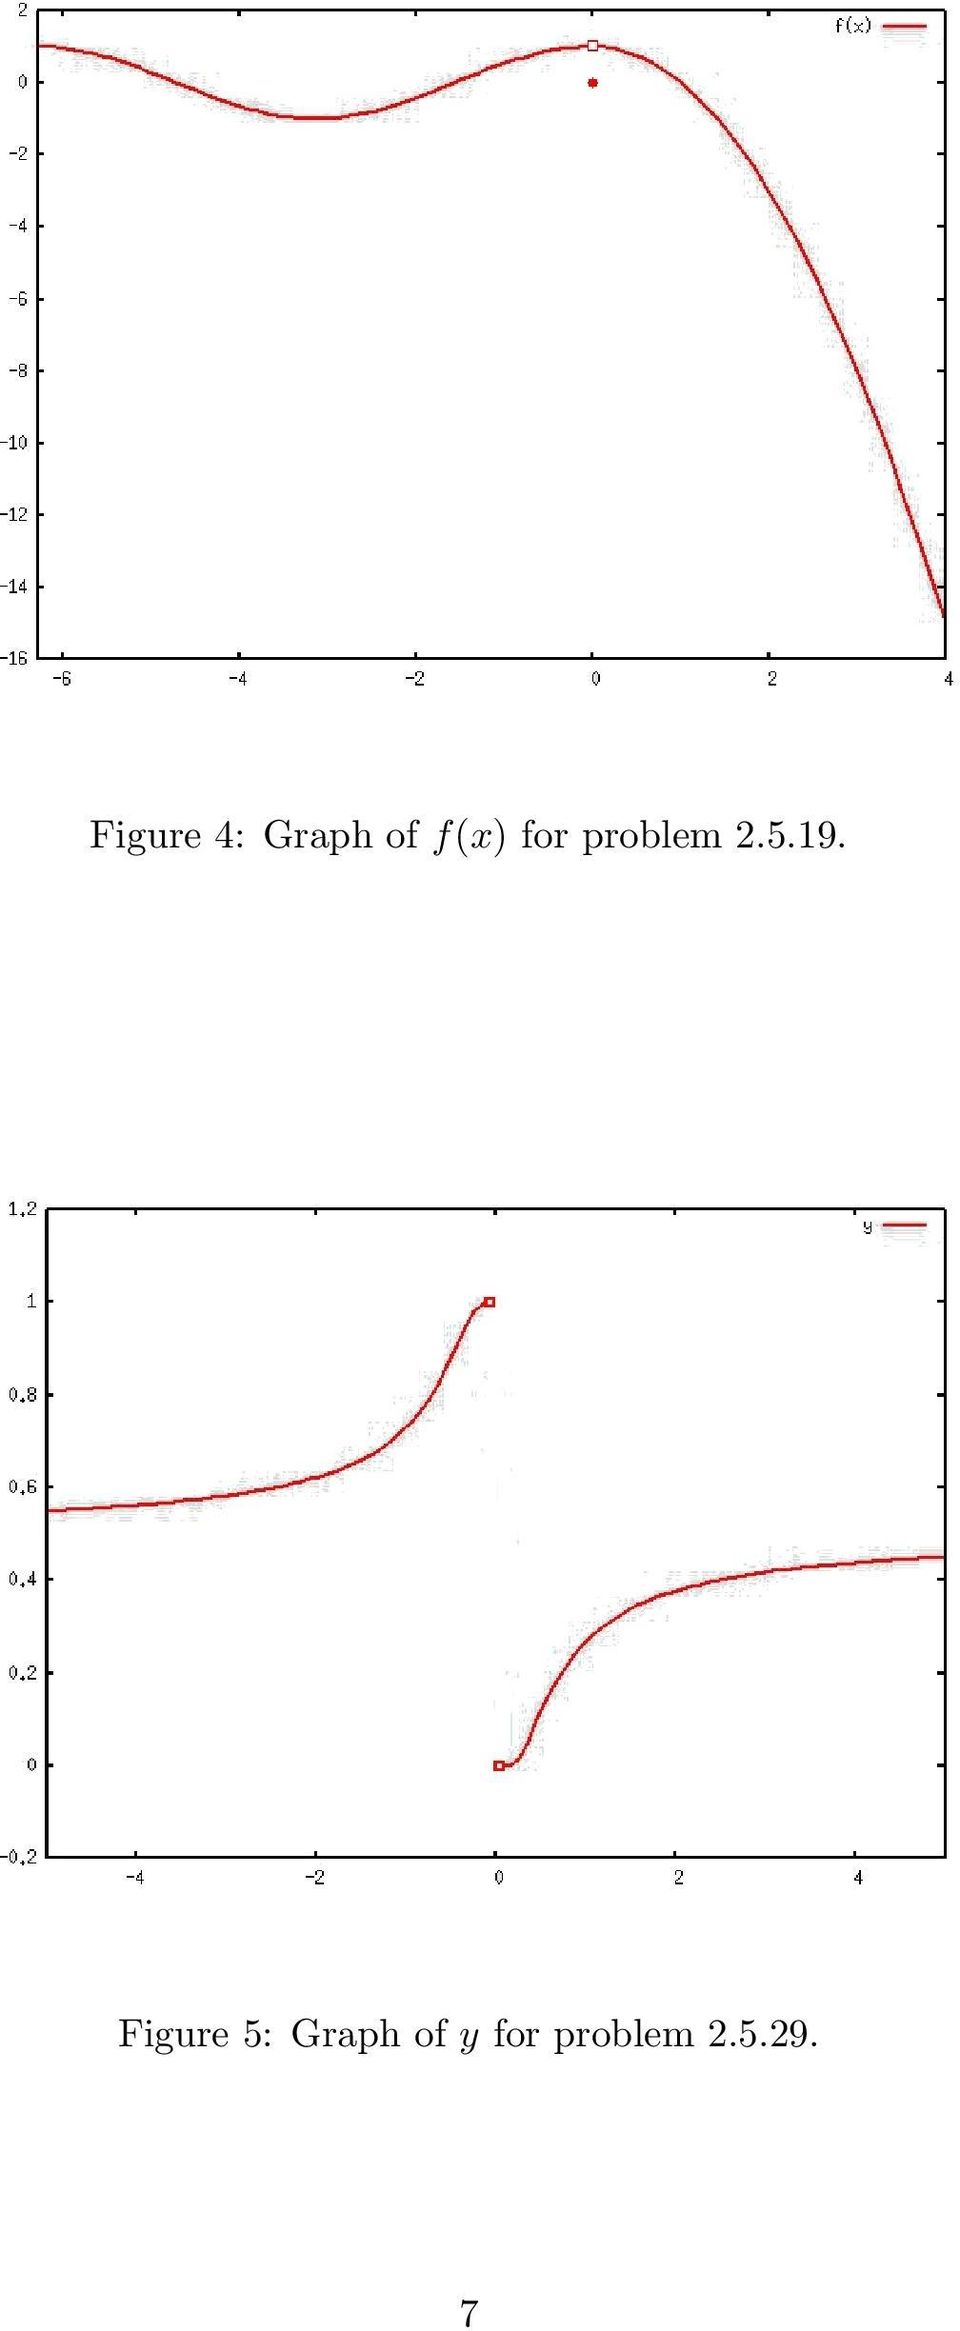 9. Figure 5: Graph of